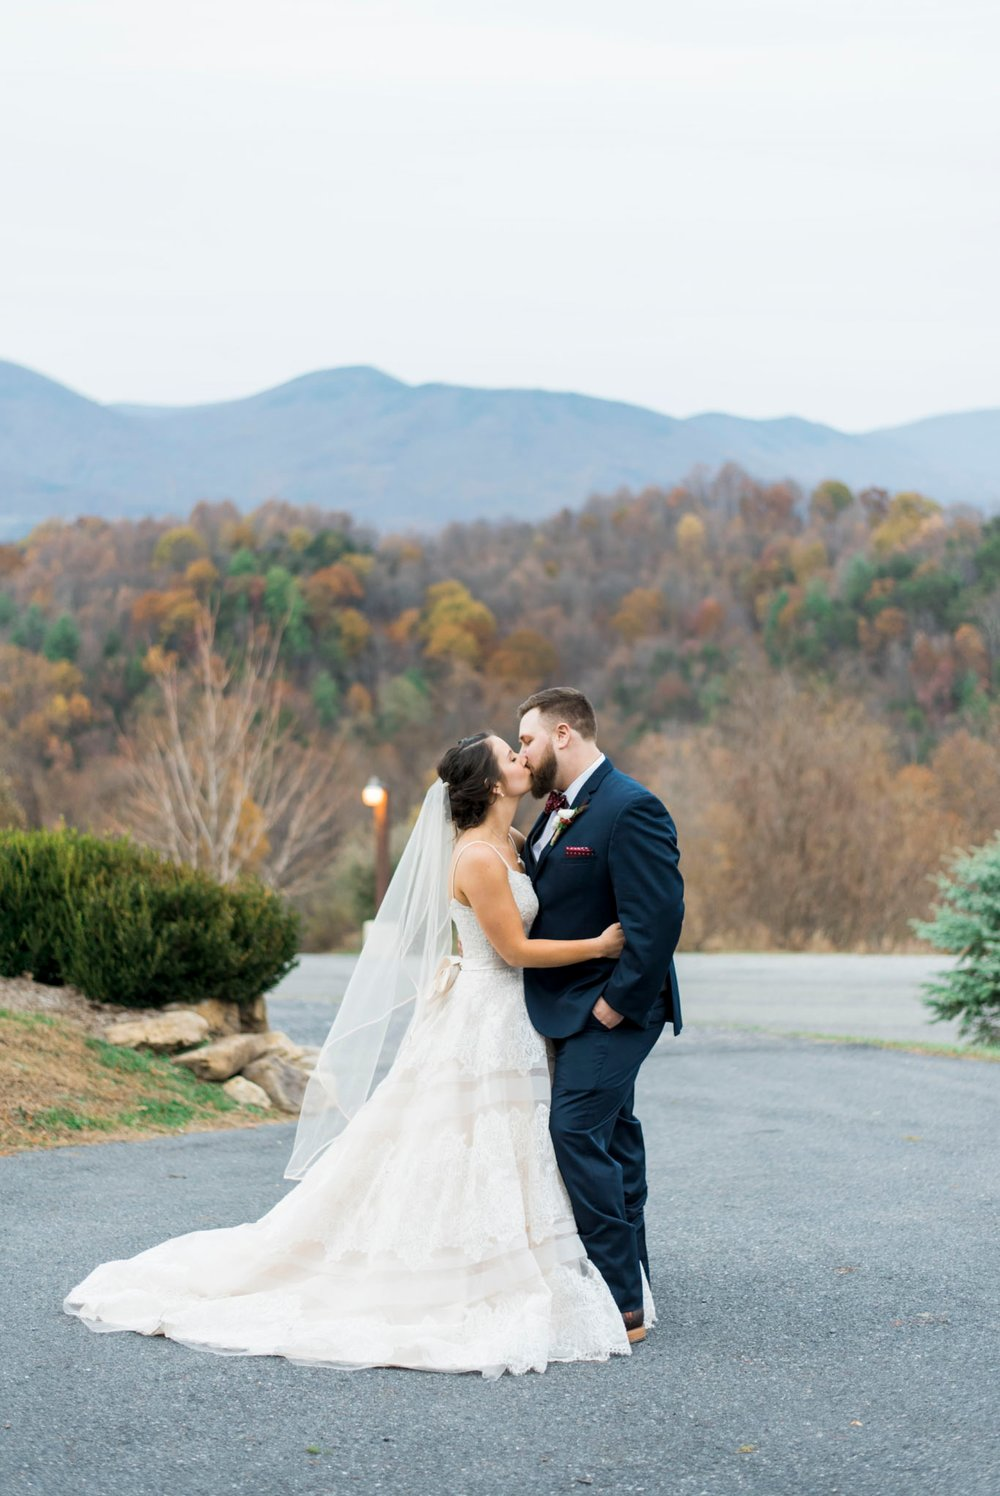 IrvineEstate_LexingtonVA_Wedding_FallWedding_VirginiaWeddingPhotographer 94.jpg